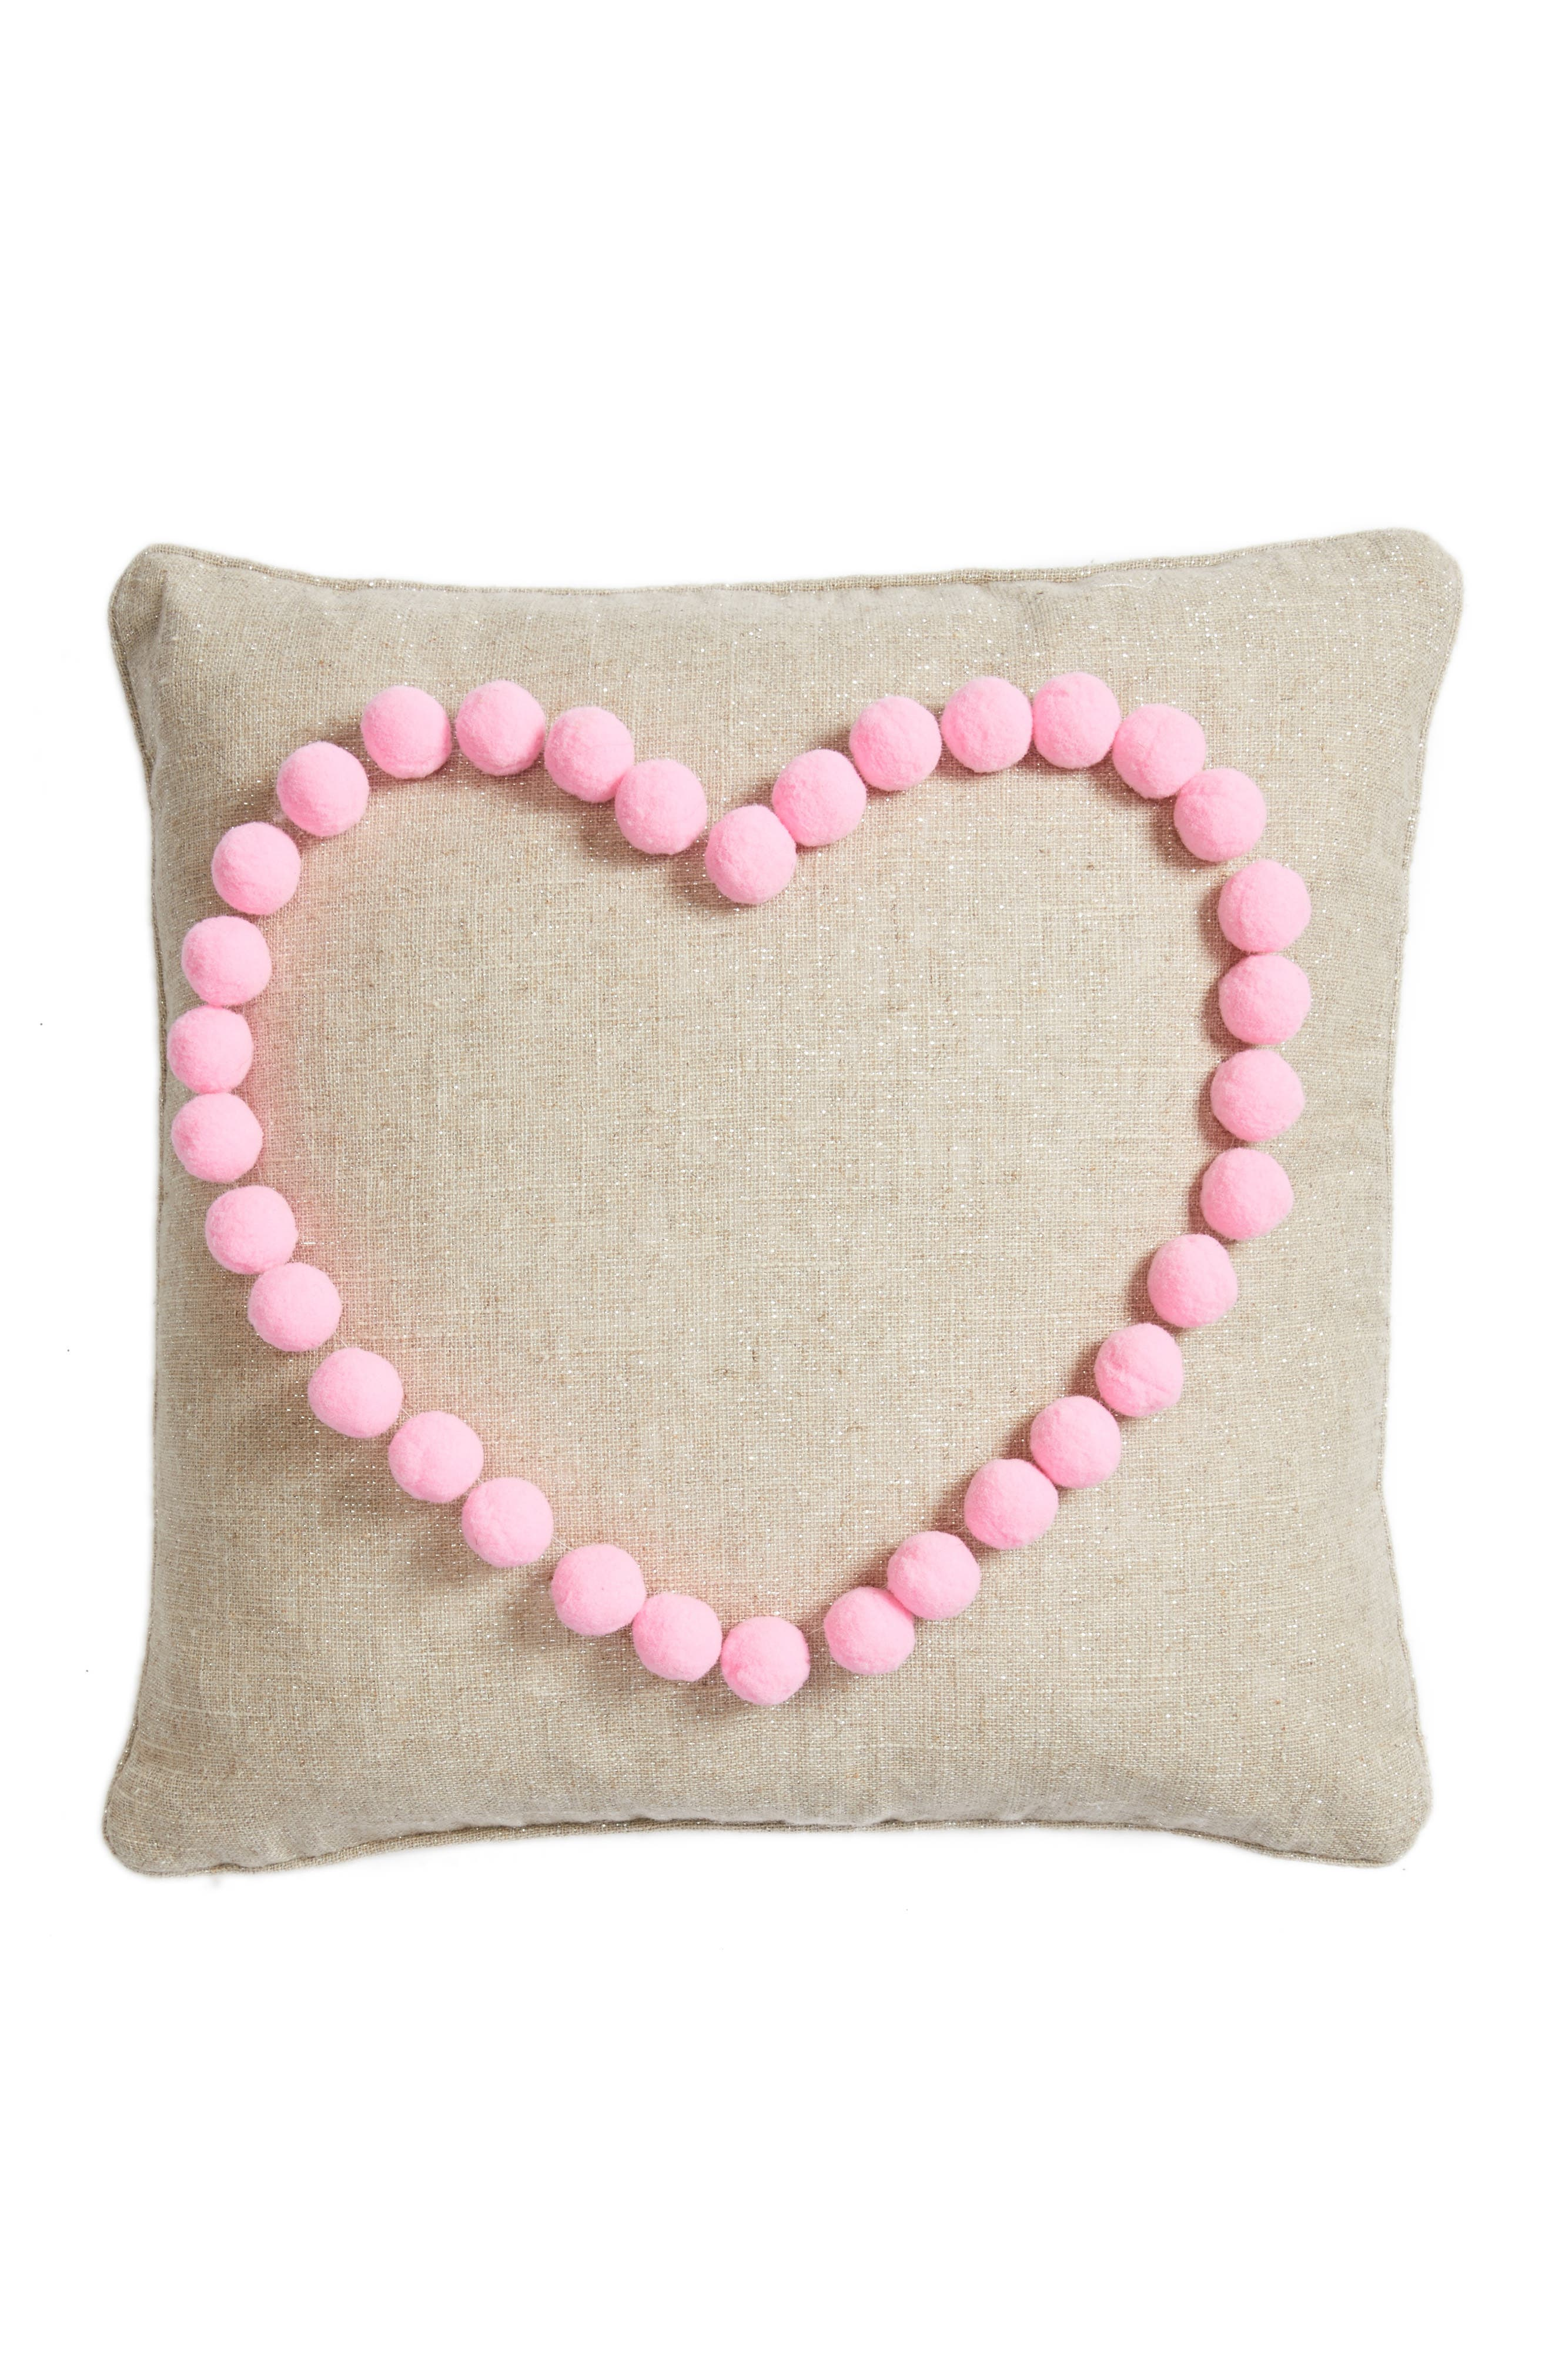 Pompom Heart Accent Pillow,                             Main thumbnail 1, color,                             Natural